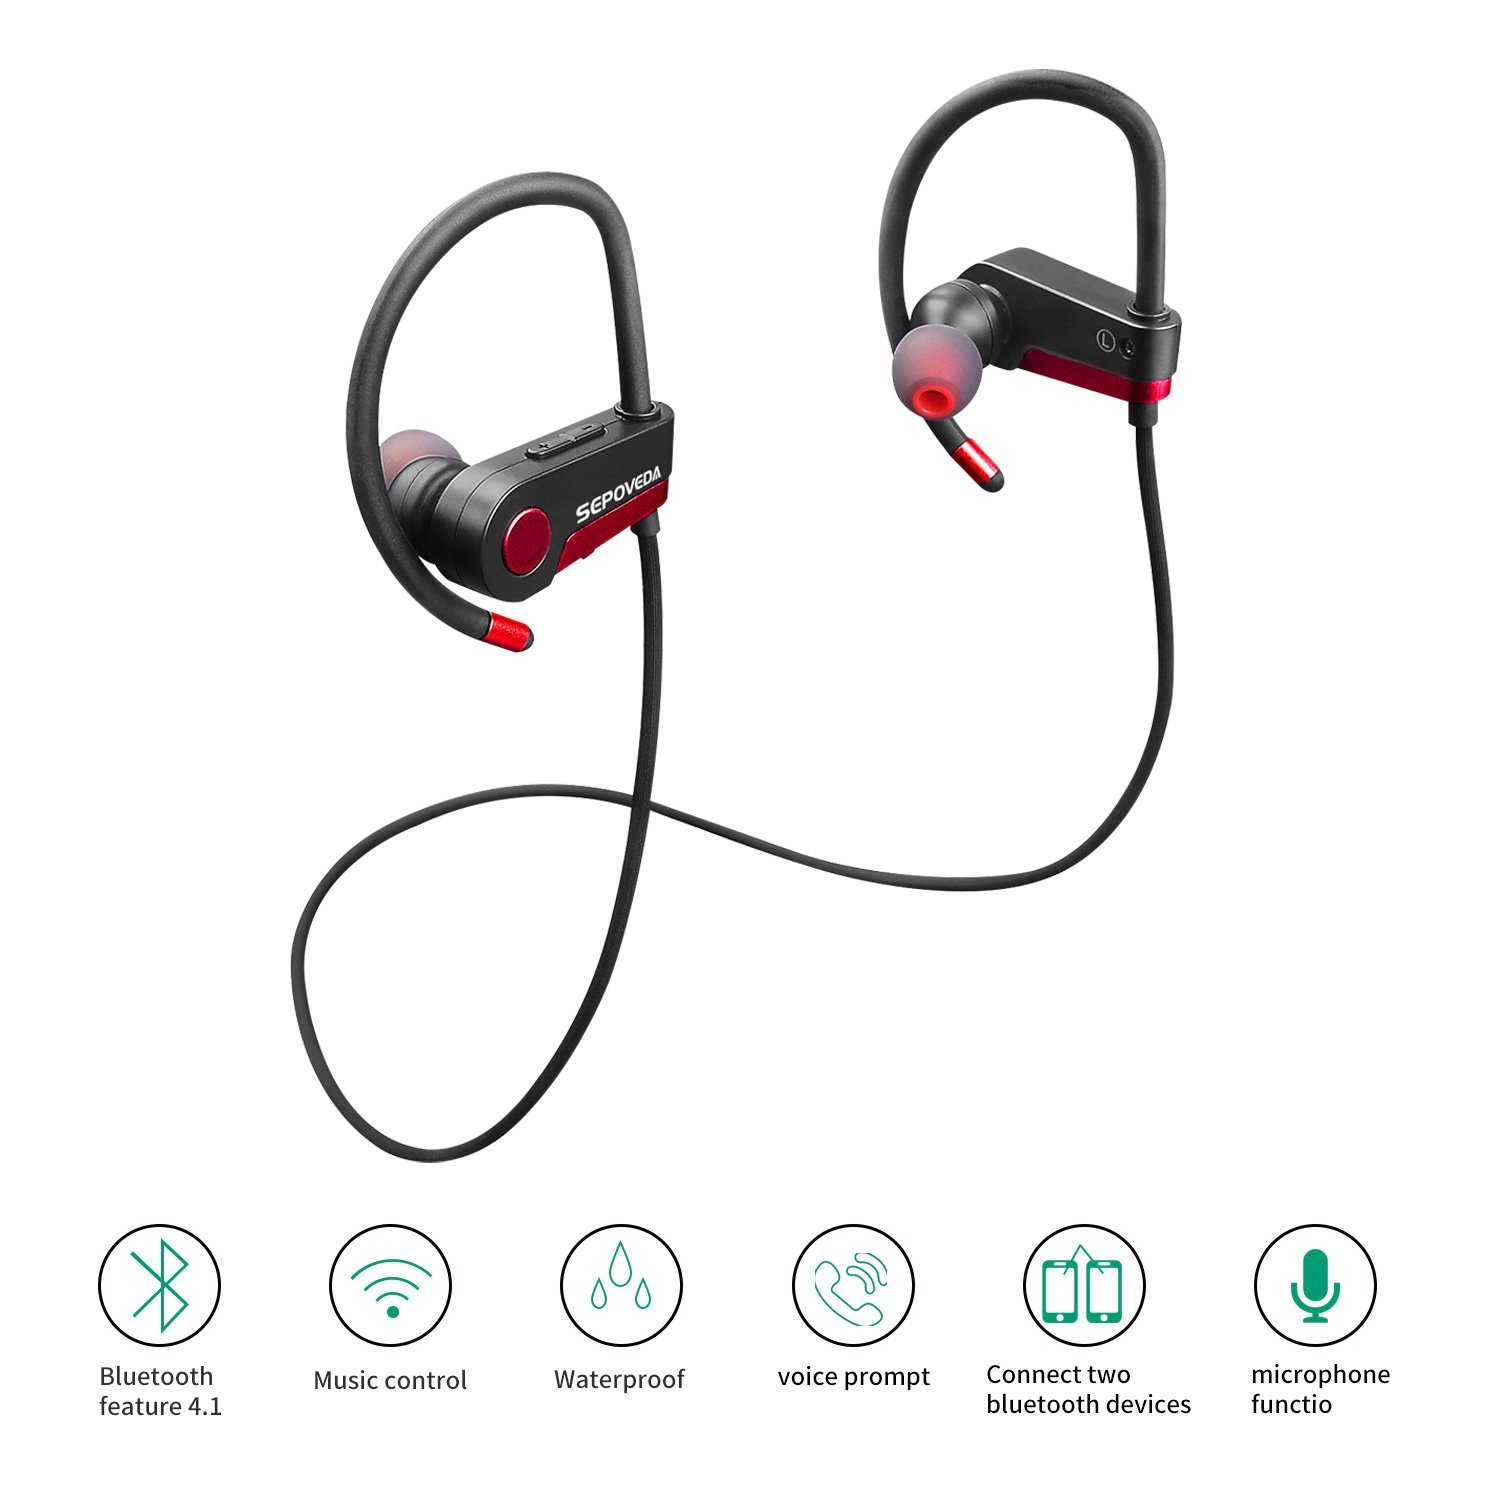 Sepoveda Bluetooth Headphones Wireless Earbuds with Mic| Sweat Proof Headphones, Noise Cancelling Tech, Crisp Sounds, HD Stereo Bass & Secure Fit